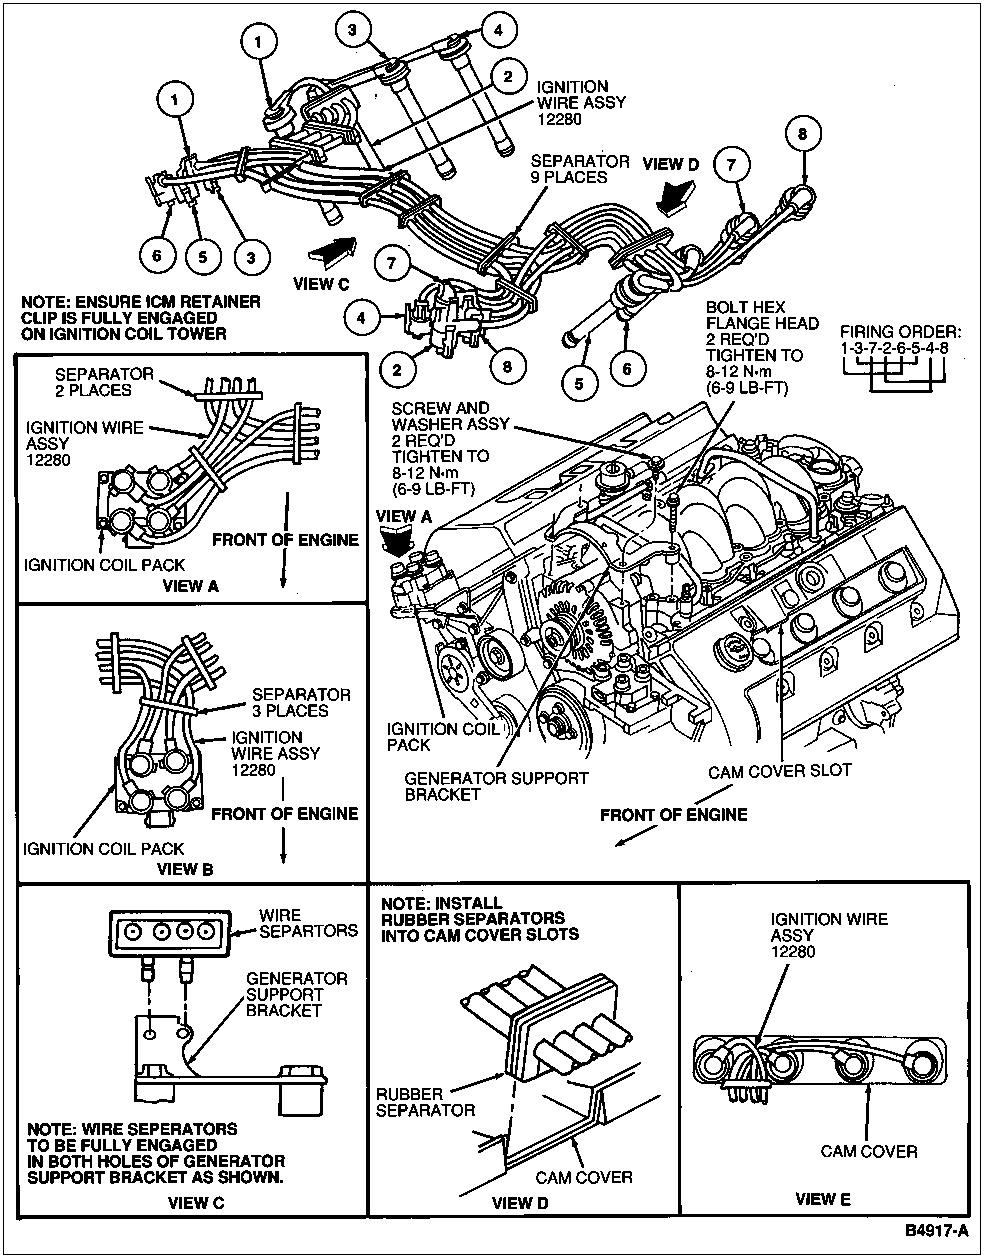 ford fusion engine diagram best part of wiring diagram 2002 Ford Expedition Fuse Box 2011 ford fusion wiring diagram wiring diagram database2006 lincoln zephyr engine diagram 1 wiring diagram source